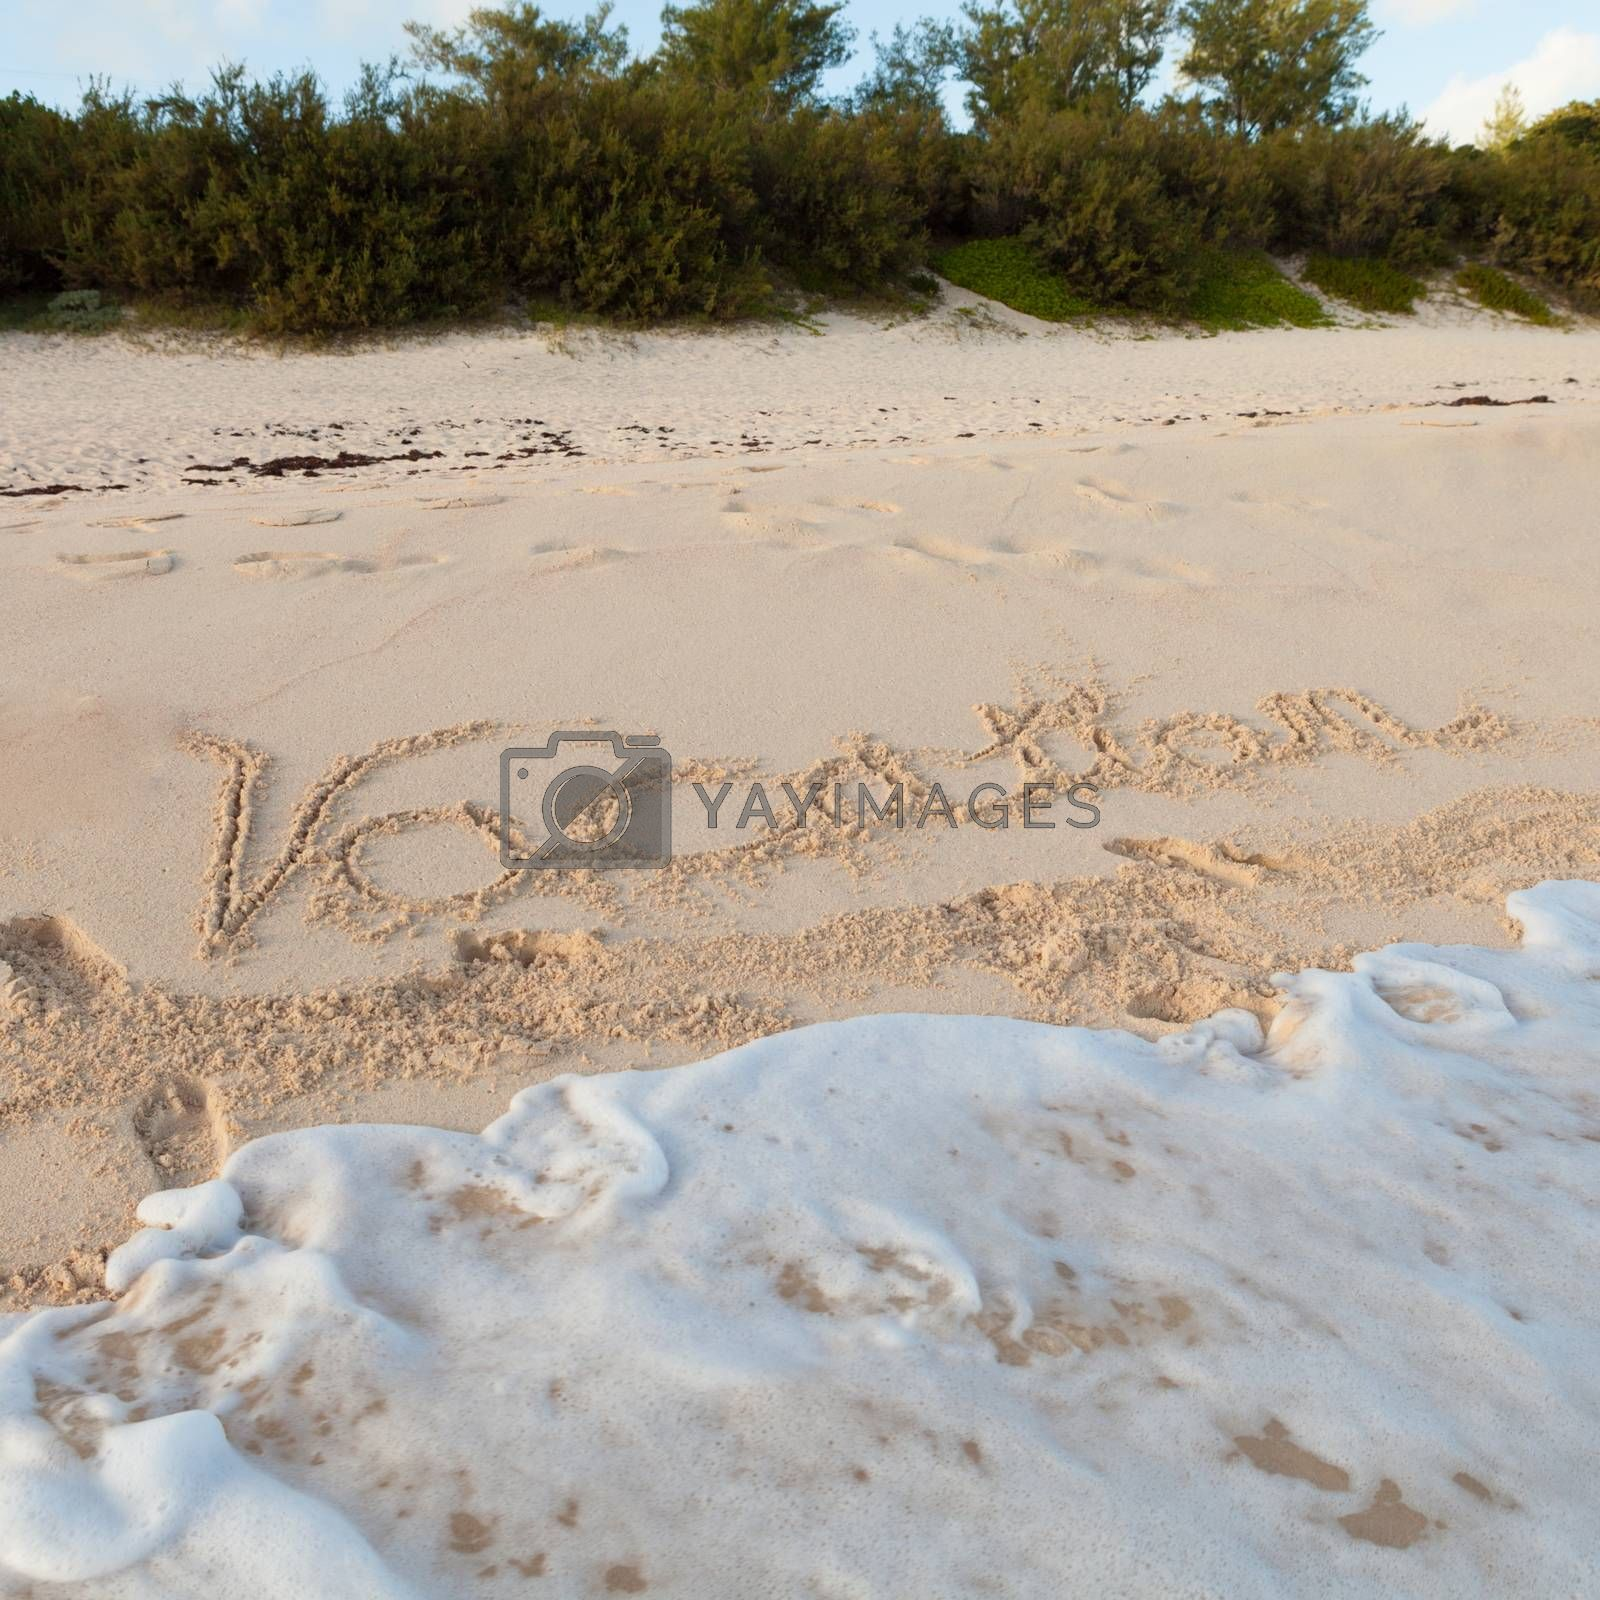 The word Vacation written in the sand on a Bermuda beach with pink sands.